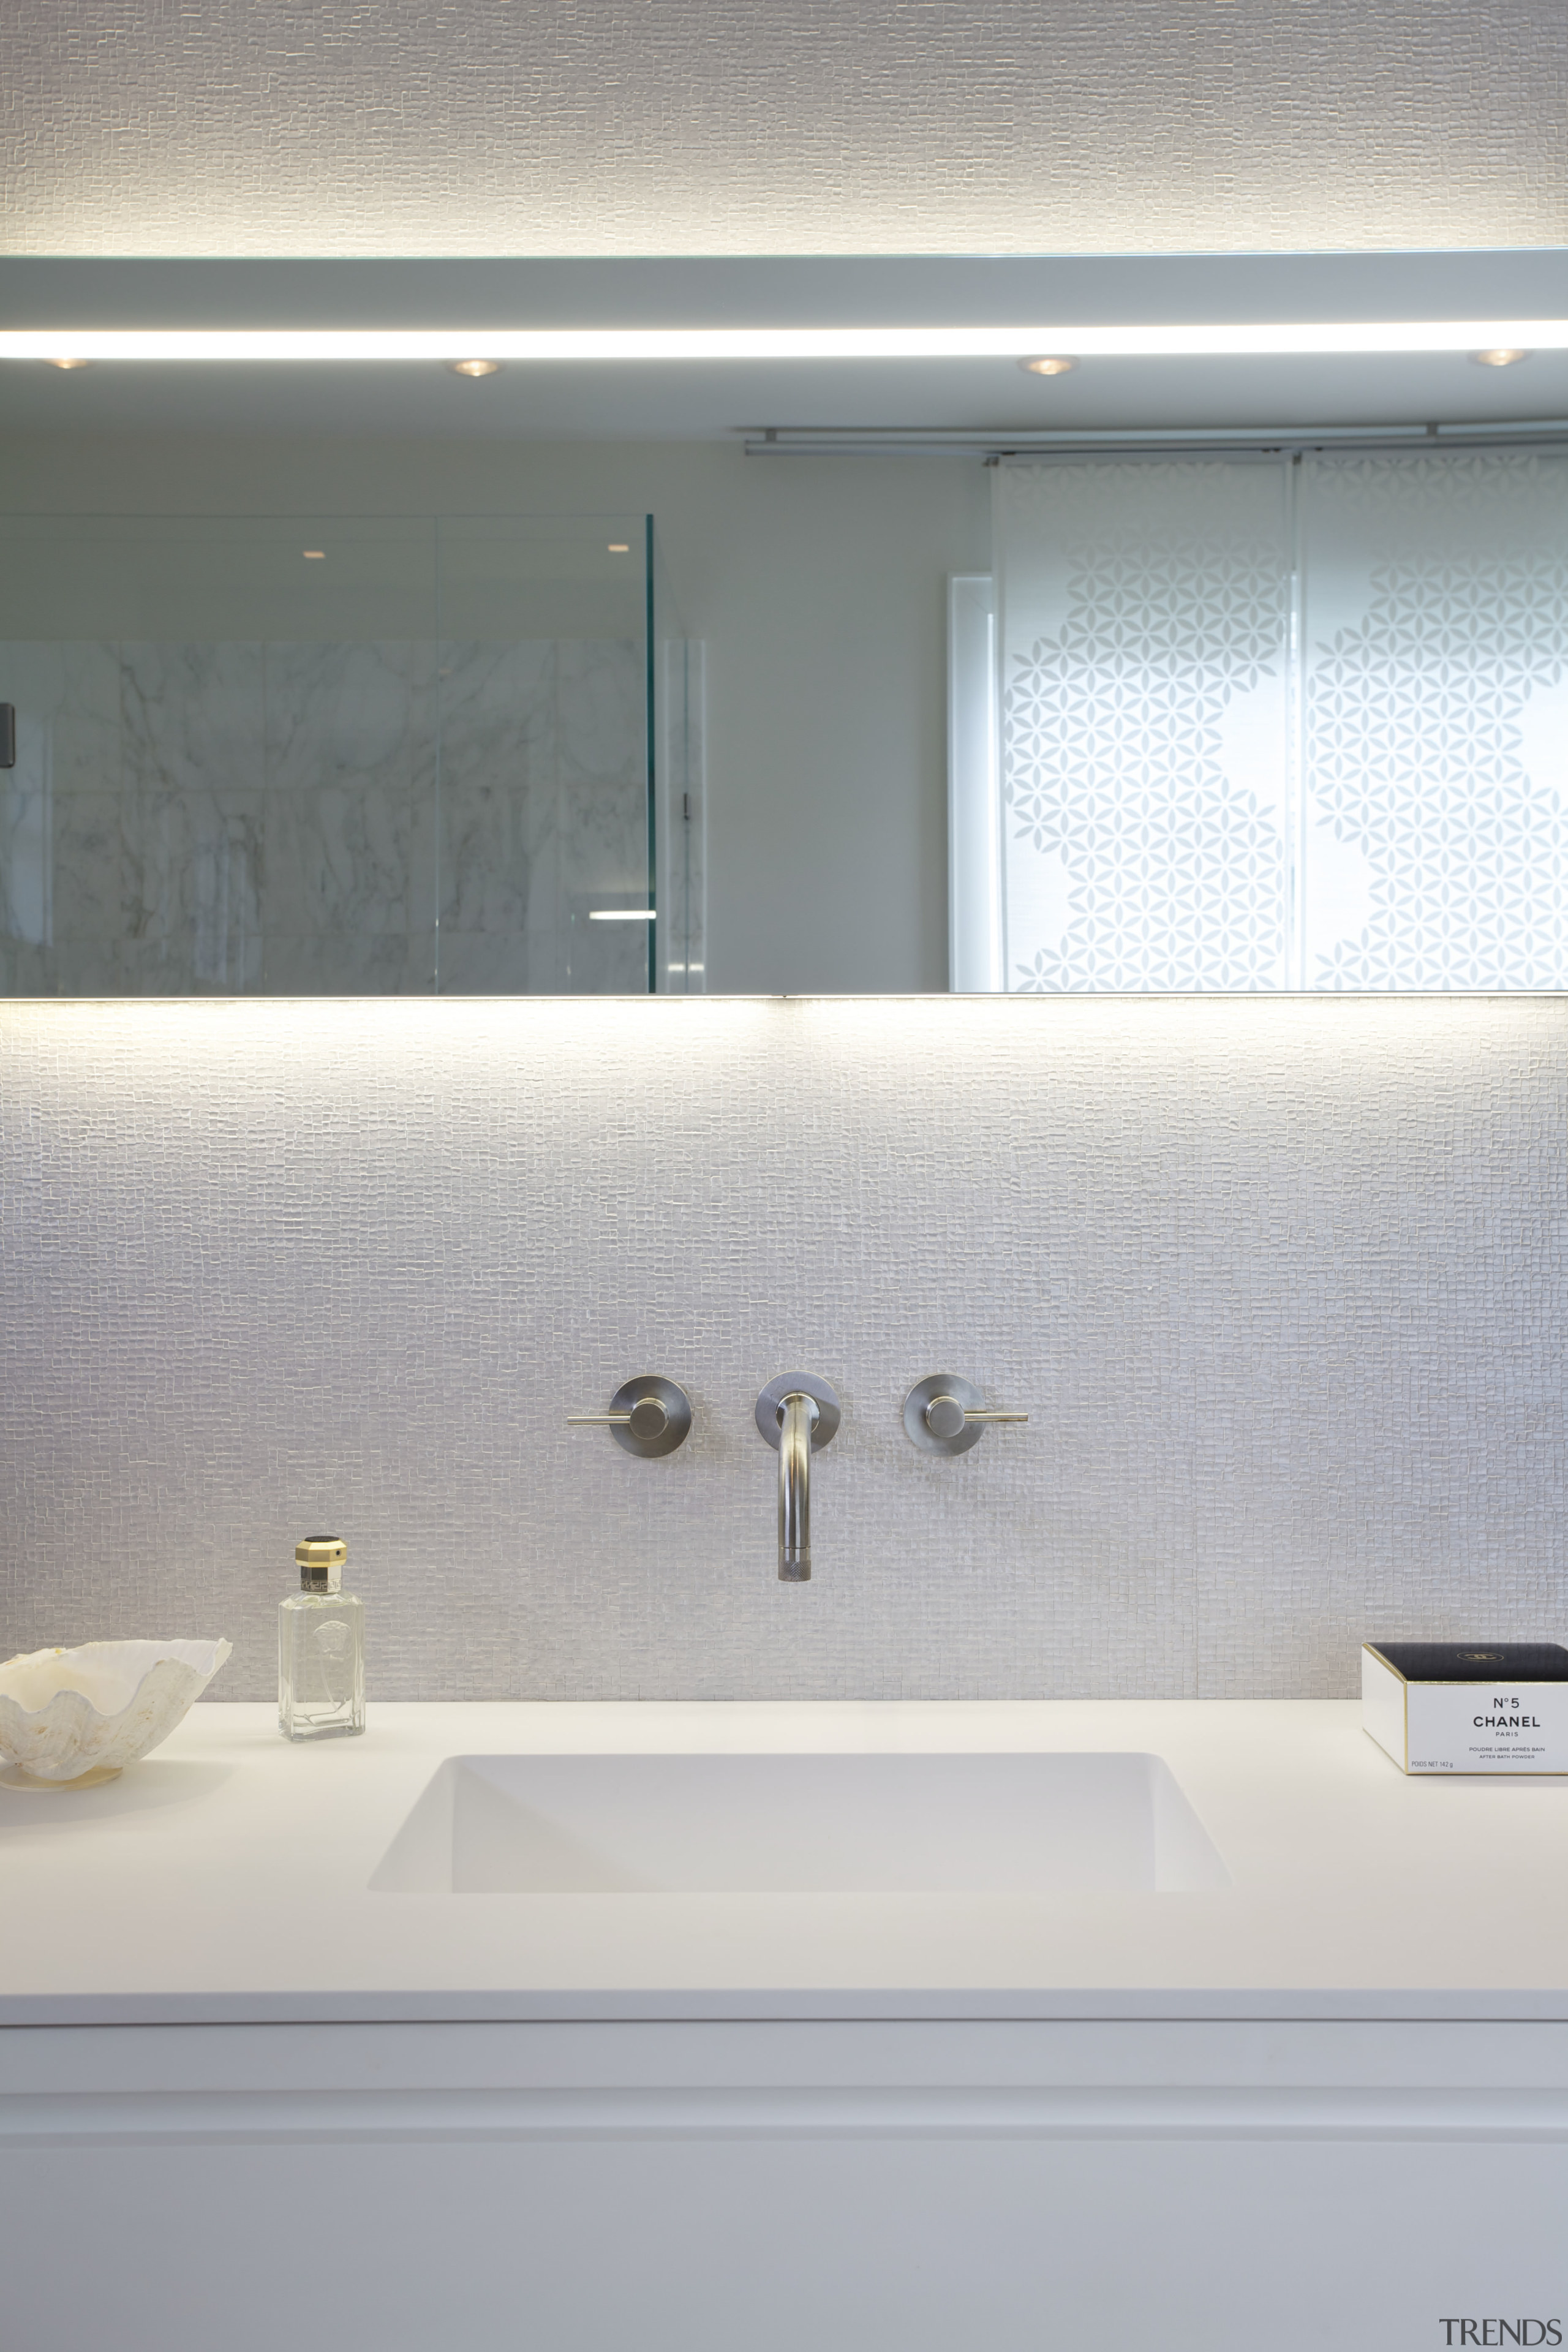 Wall-mounted faucets reinforce the clean, uncluttered look of architecture, bathroom, ceiling, daylighting, interior design, plumbing fixture, product design, room, sink, tap, gray, white